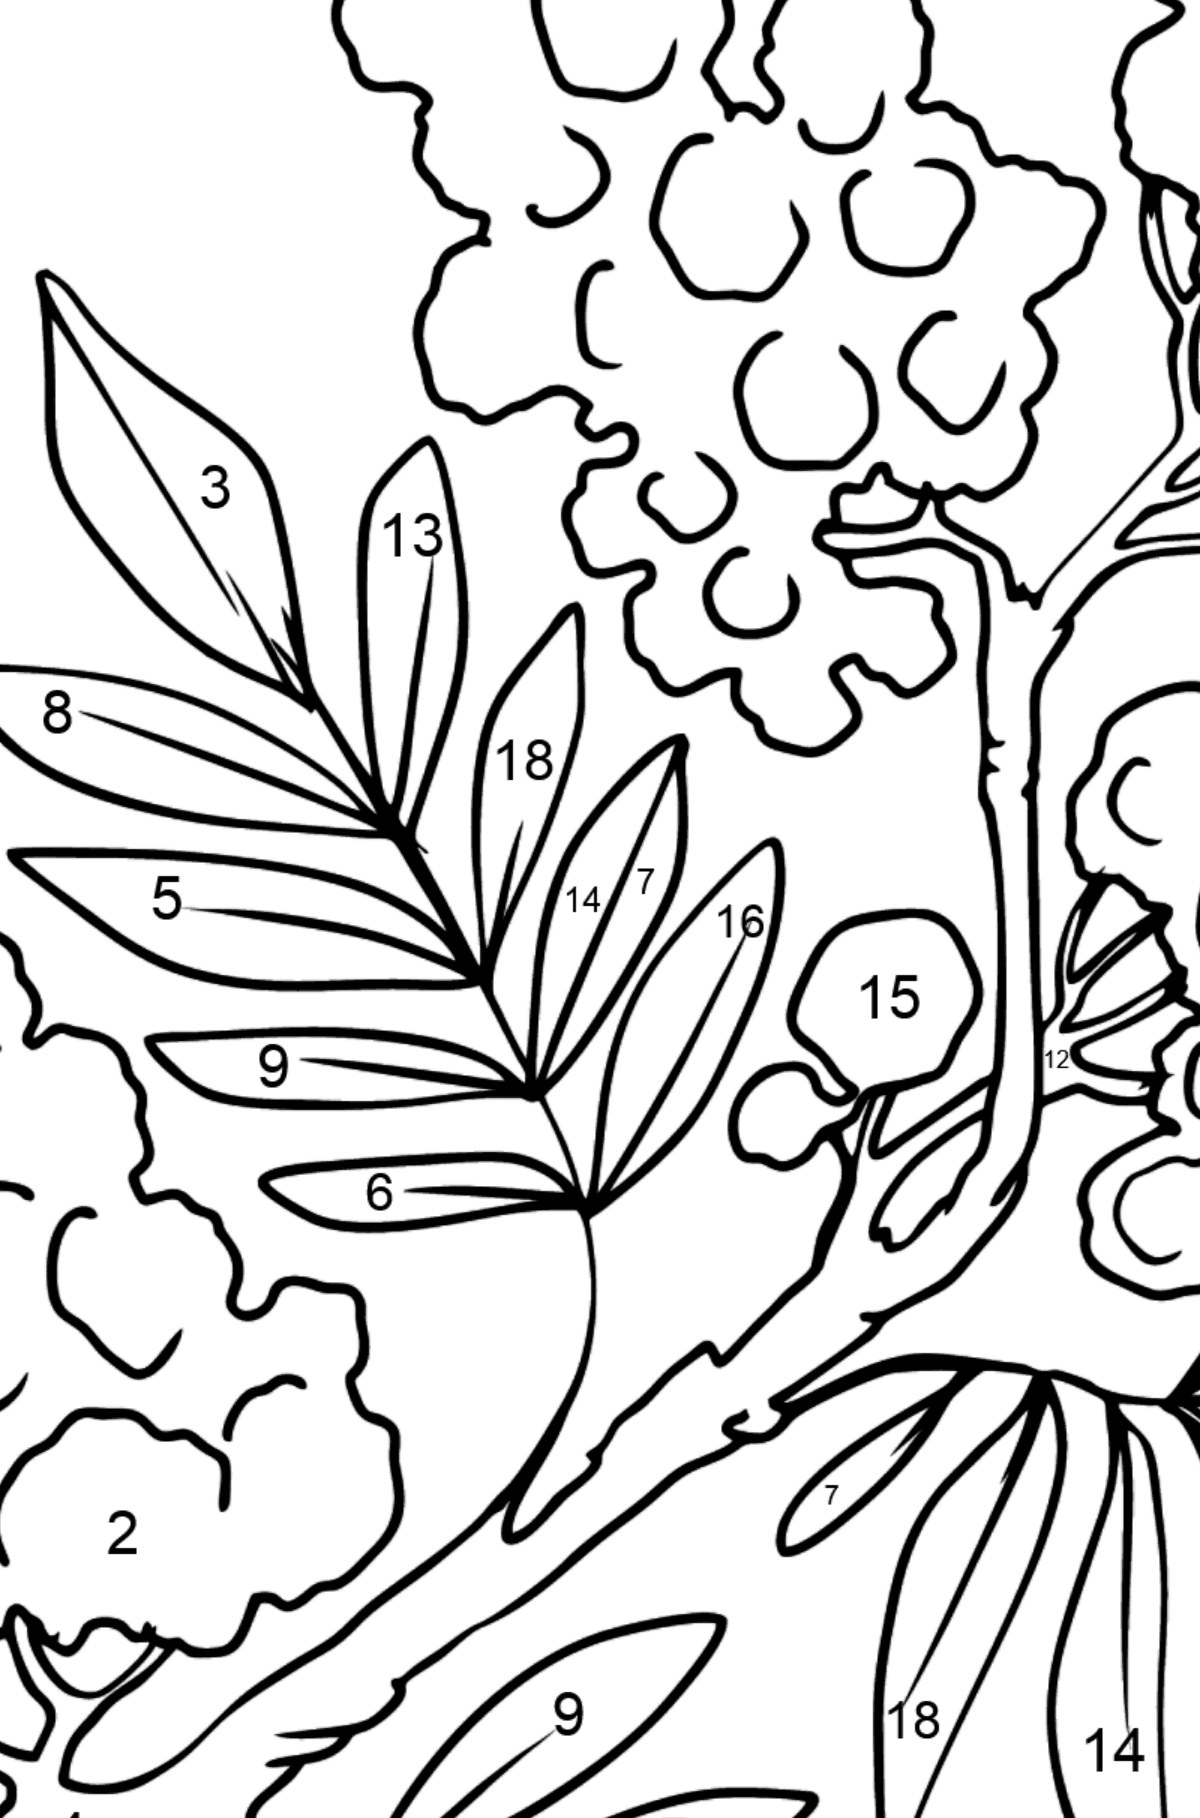 Flower Coloring Page - Mimosa - Coloring by Numbers for Kids